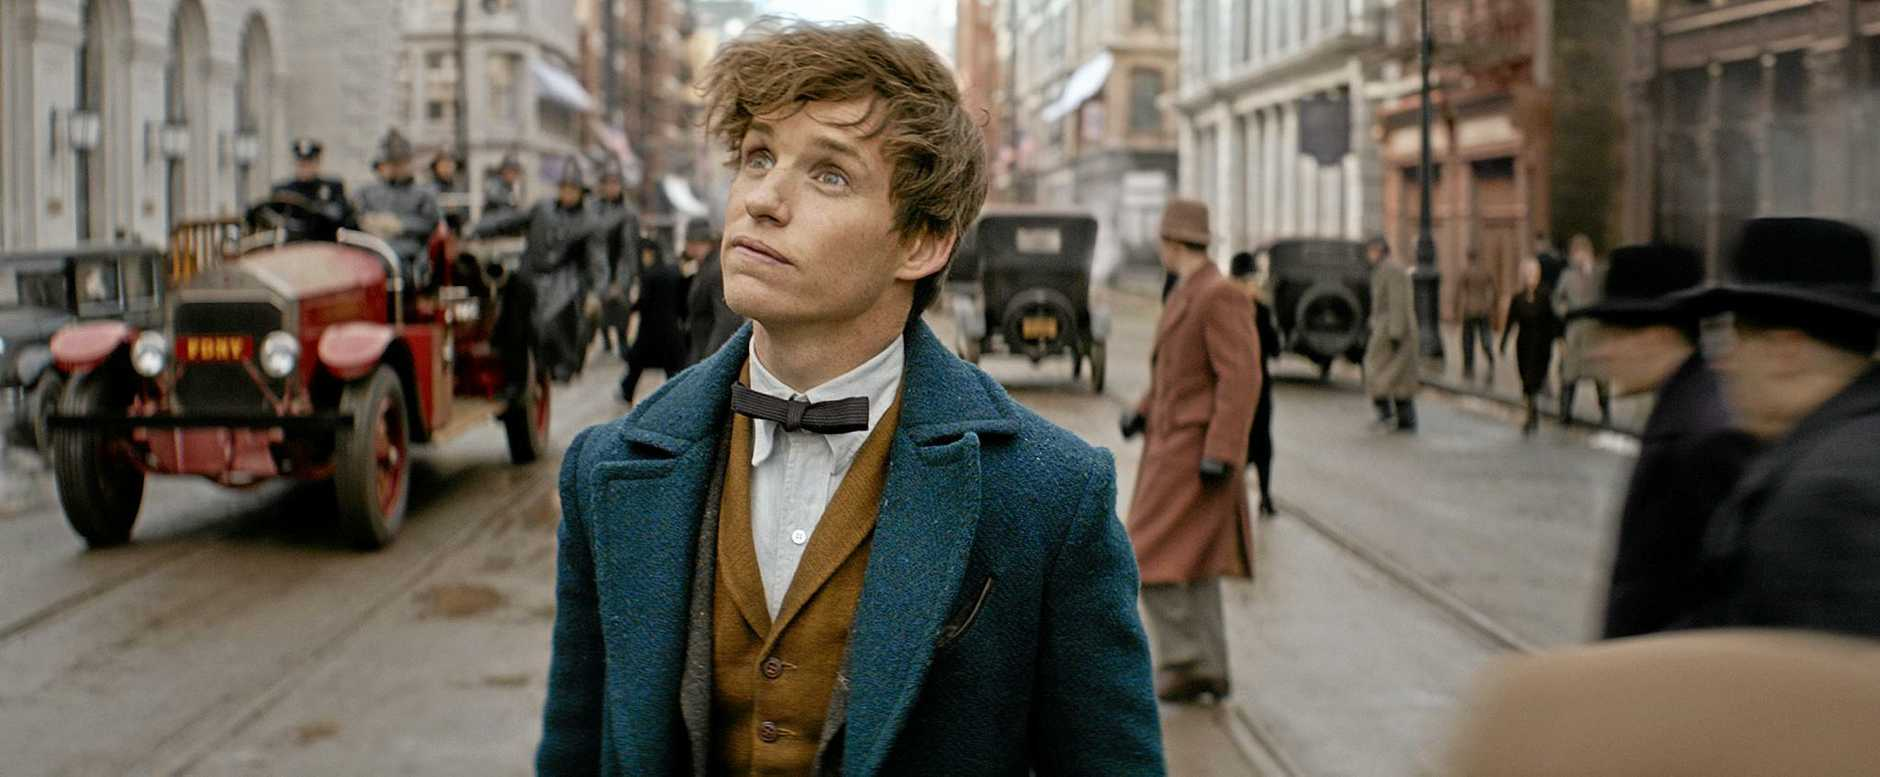 Eddie Redmayne in Fantastic Beast and Where To Find Them.